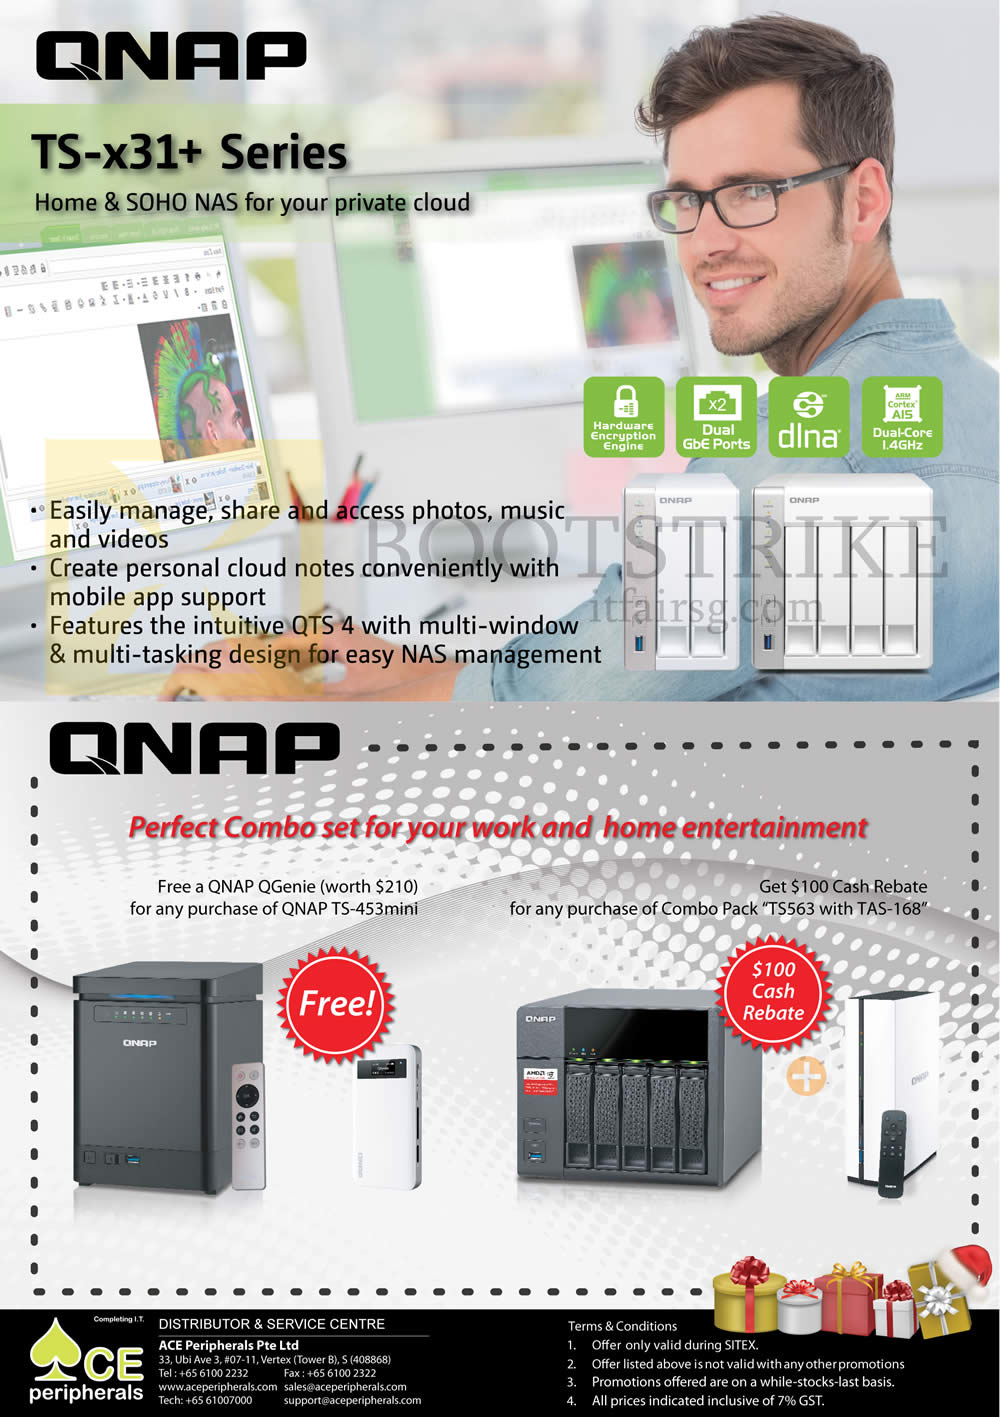 SITEX 2015 price list image brochure of Ace Peripherals Lucky Draw Foscam QNAP Strontium Synology Promo Pg2